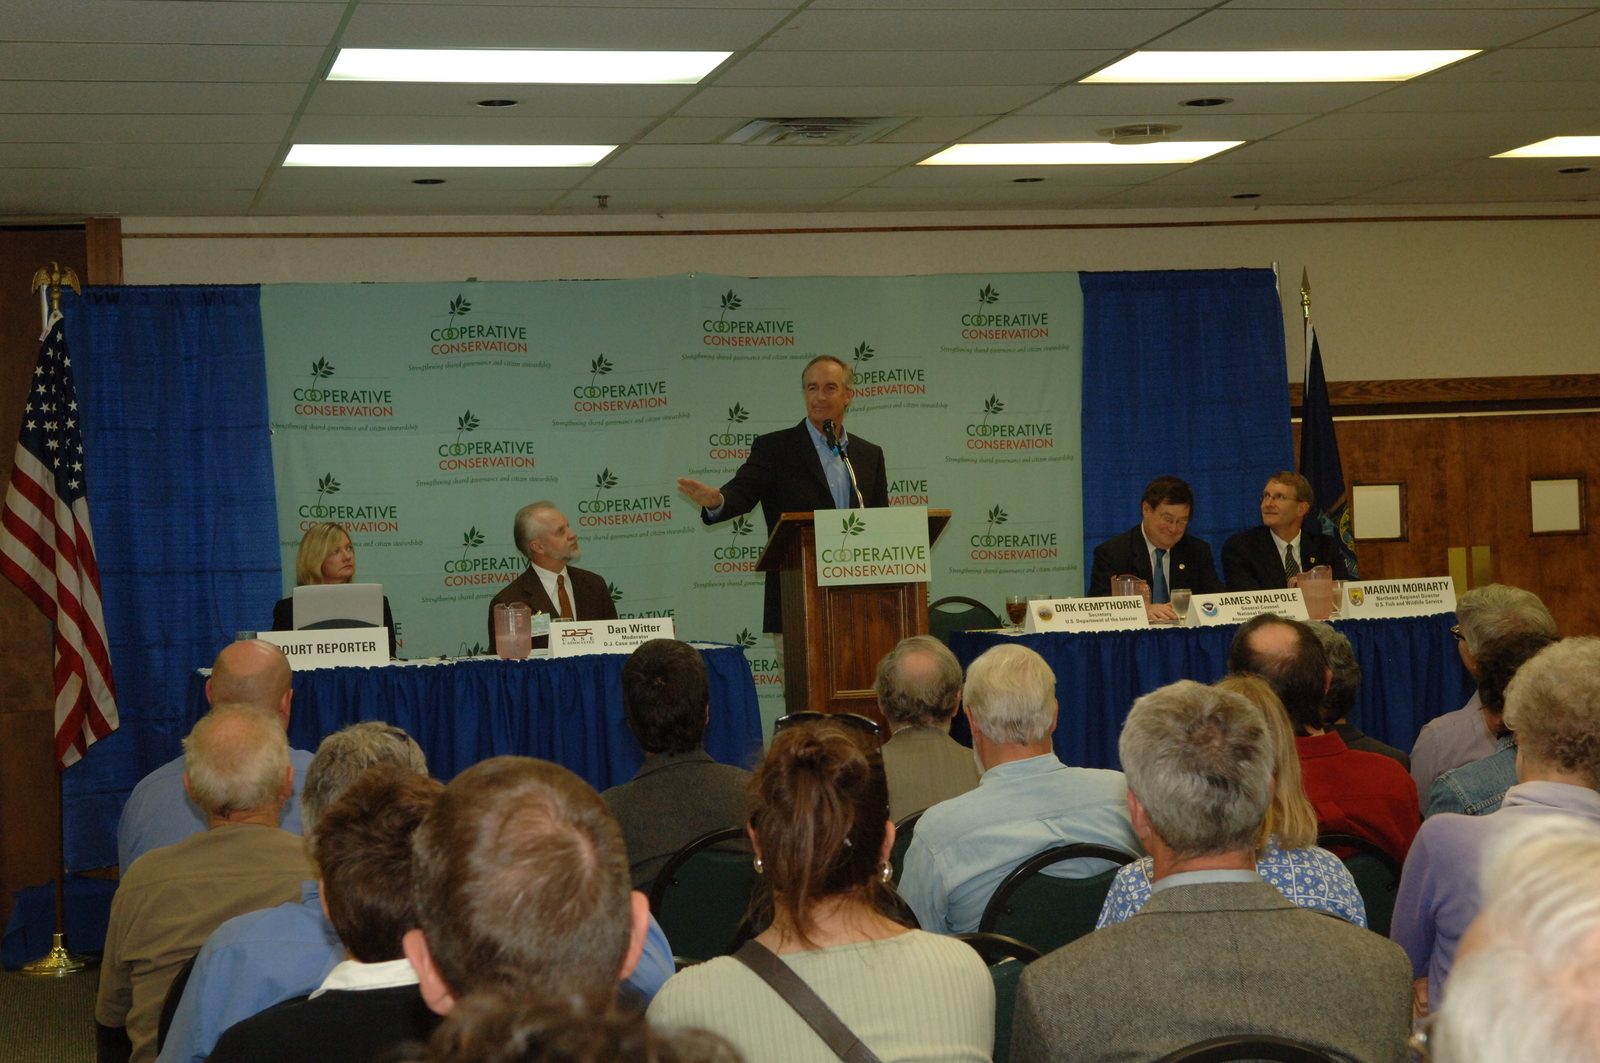 """[Assignment: 48-DPA-SOI_K_ME_CoopC_9-20-06] Cooperative Conservation public """"listening session"""" at [Jeff's Catering Banquet and Convention Center in Brewer], Maine, with Secretary Dirk Kempthorne [joining Fish and Wildlife Service Northeast Regional Director Marvin Moriarty and National Oceanic and Atmospheric Administration General Counsel James Walpole among the federal officials on hand] [48-DPA-SOI_K_ME_CoopC_9-20-06_IOD_6304.JPG]"""